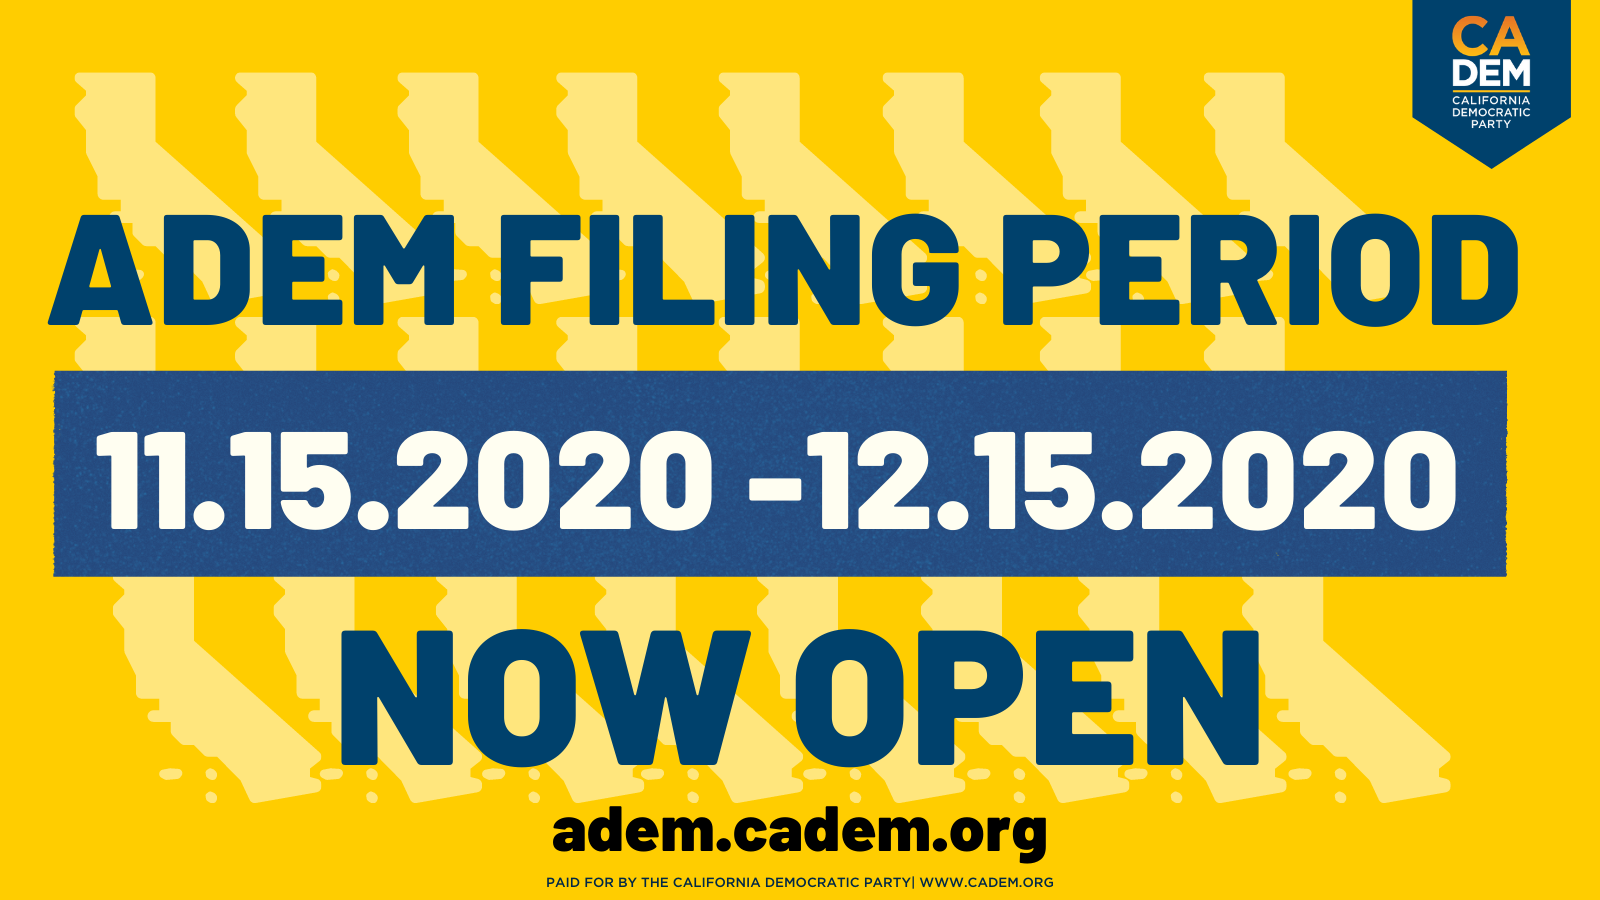 ADEM Filing Period: 11/15/20 - 12/15/20 NOW OPEN adem.cadem.org